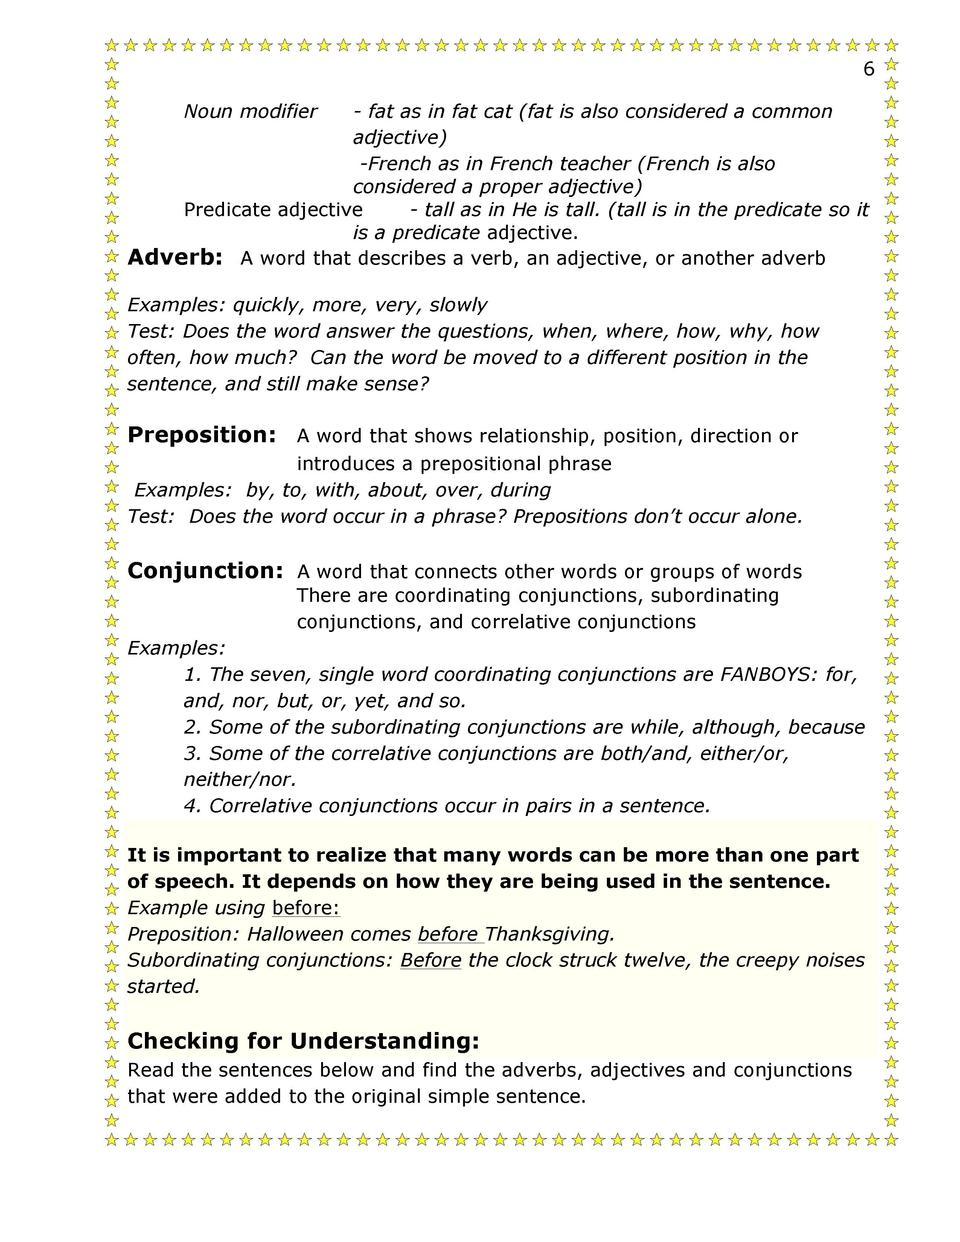 Worksheet Adverb In A Sentence 13 14 second semester grammar 1 simplebooklet com checking for understanding read the sentences below and find adverbs adjectives conjunctions that were added to original simple sent